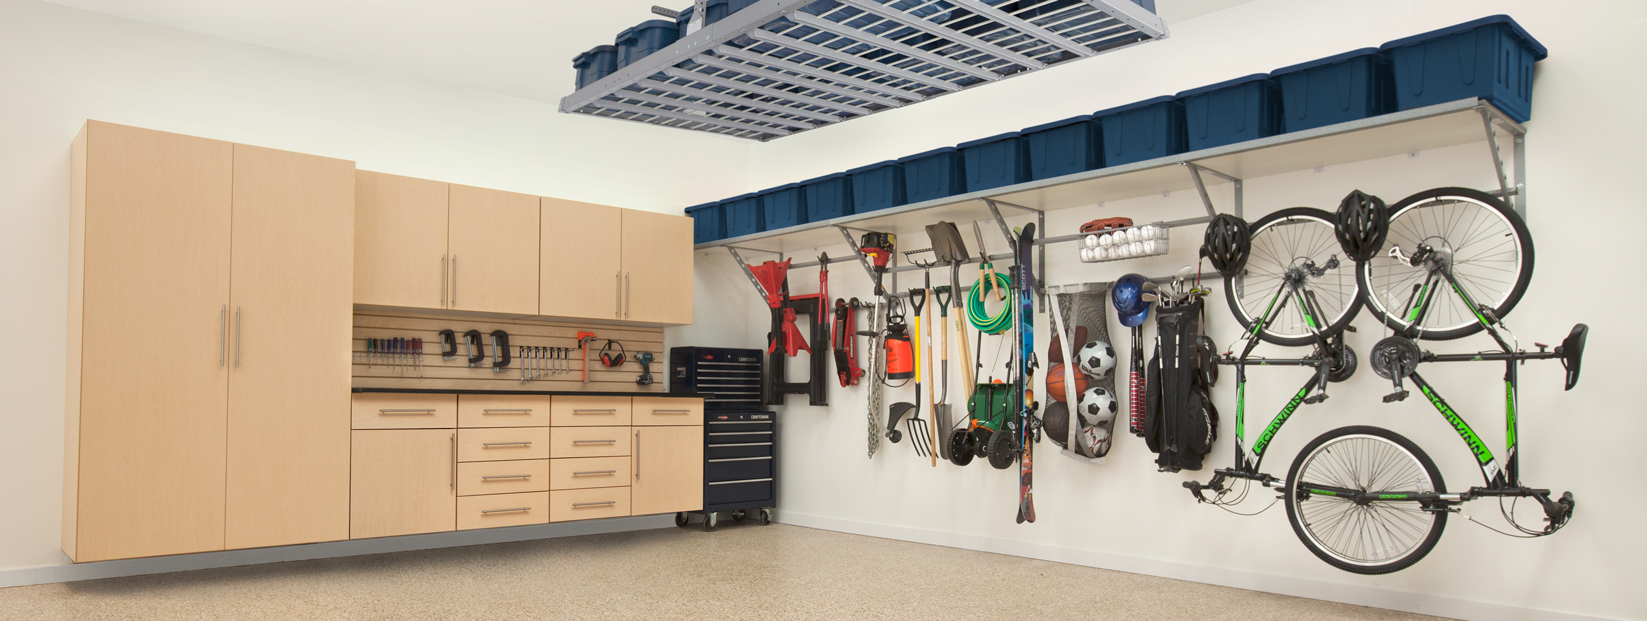 garage storage in Brentwood